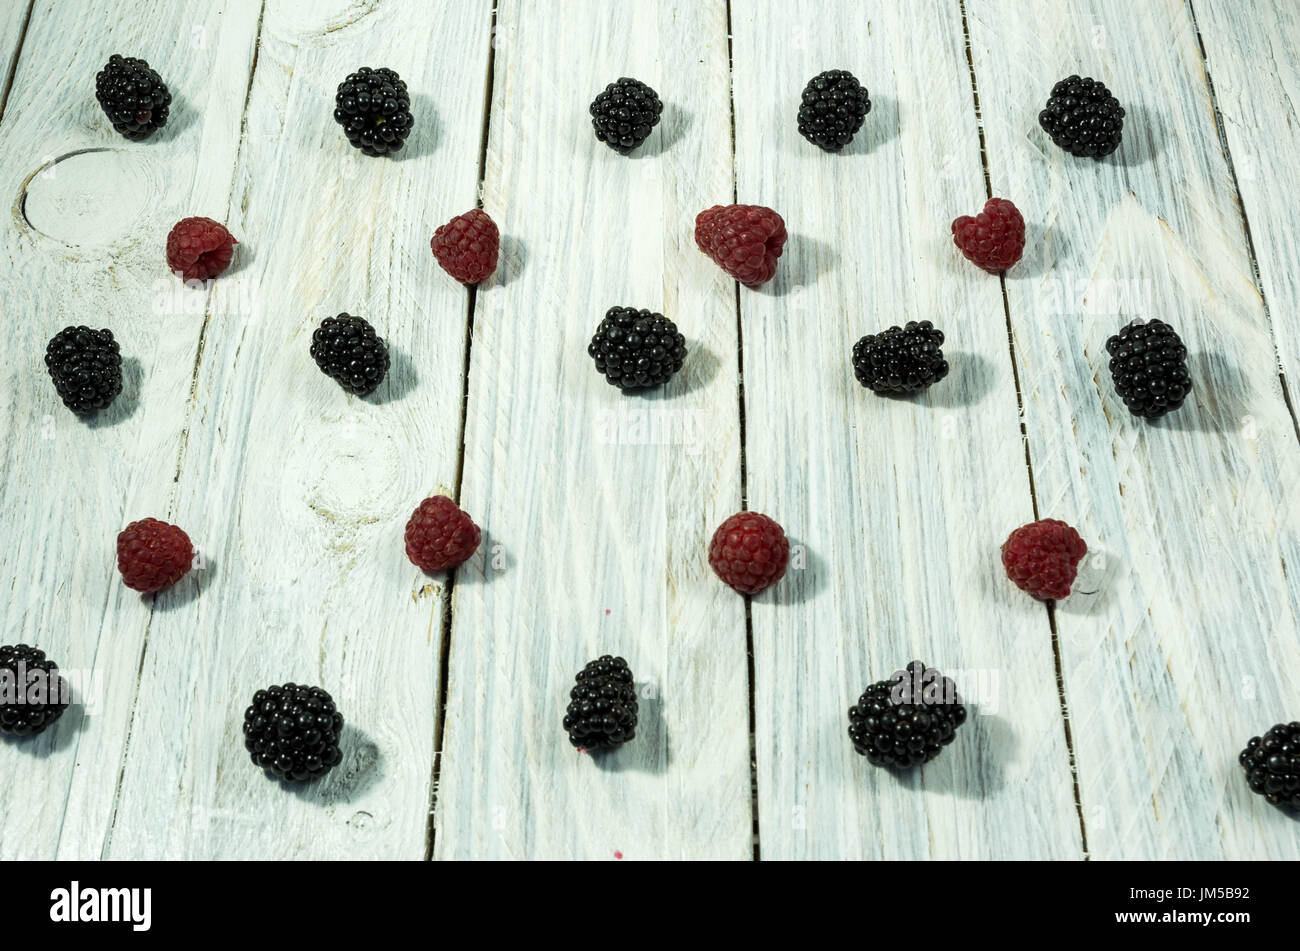 Blackberry and raspberries. are arranged in a row. Top view. Berries on a white background. - Stock Image